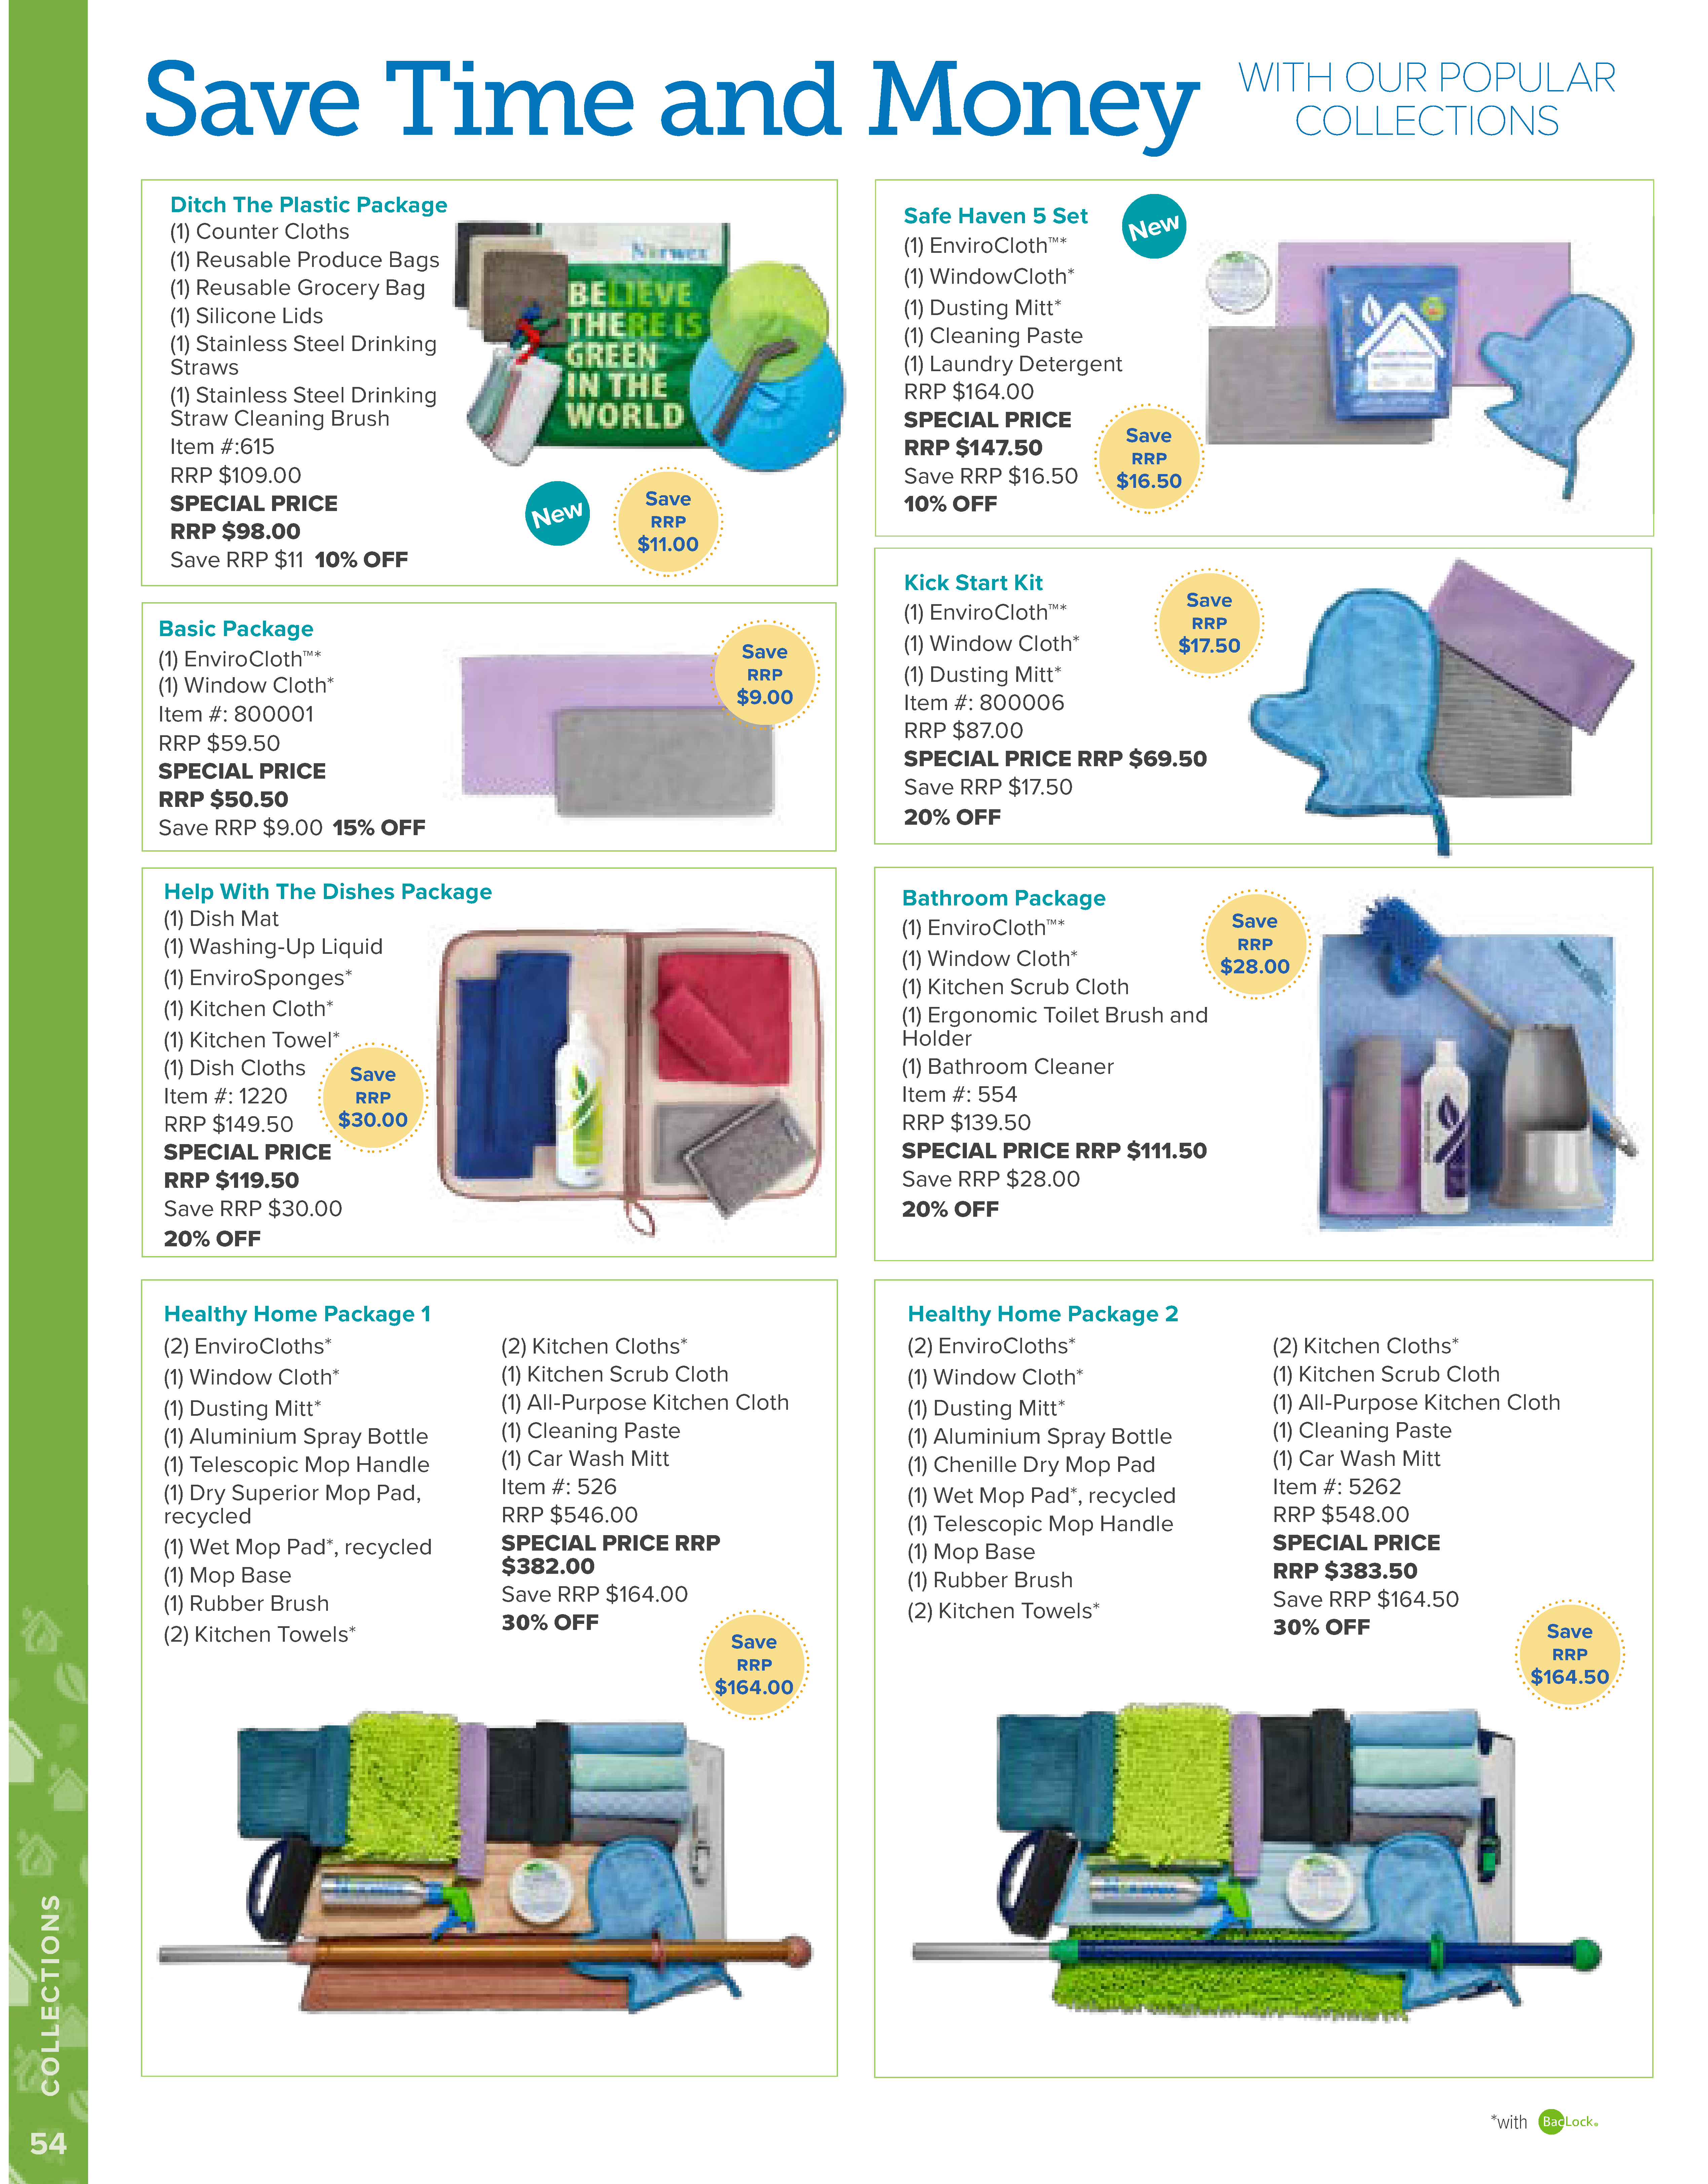 AU 2019 Catalogue Collection and packs  - ditch the plastic package basic package help with the dishes healthy homes packages bathroom package kick start kit safe haven set Page 54.jpg